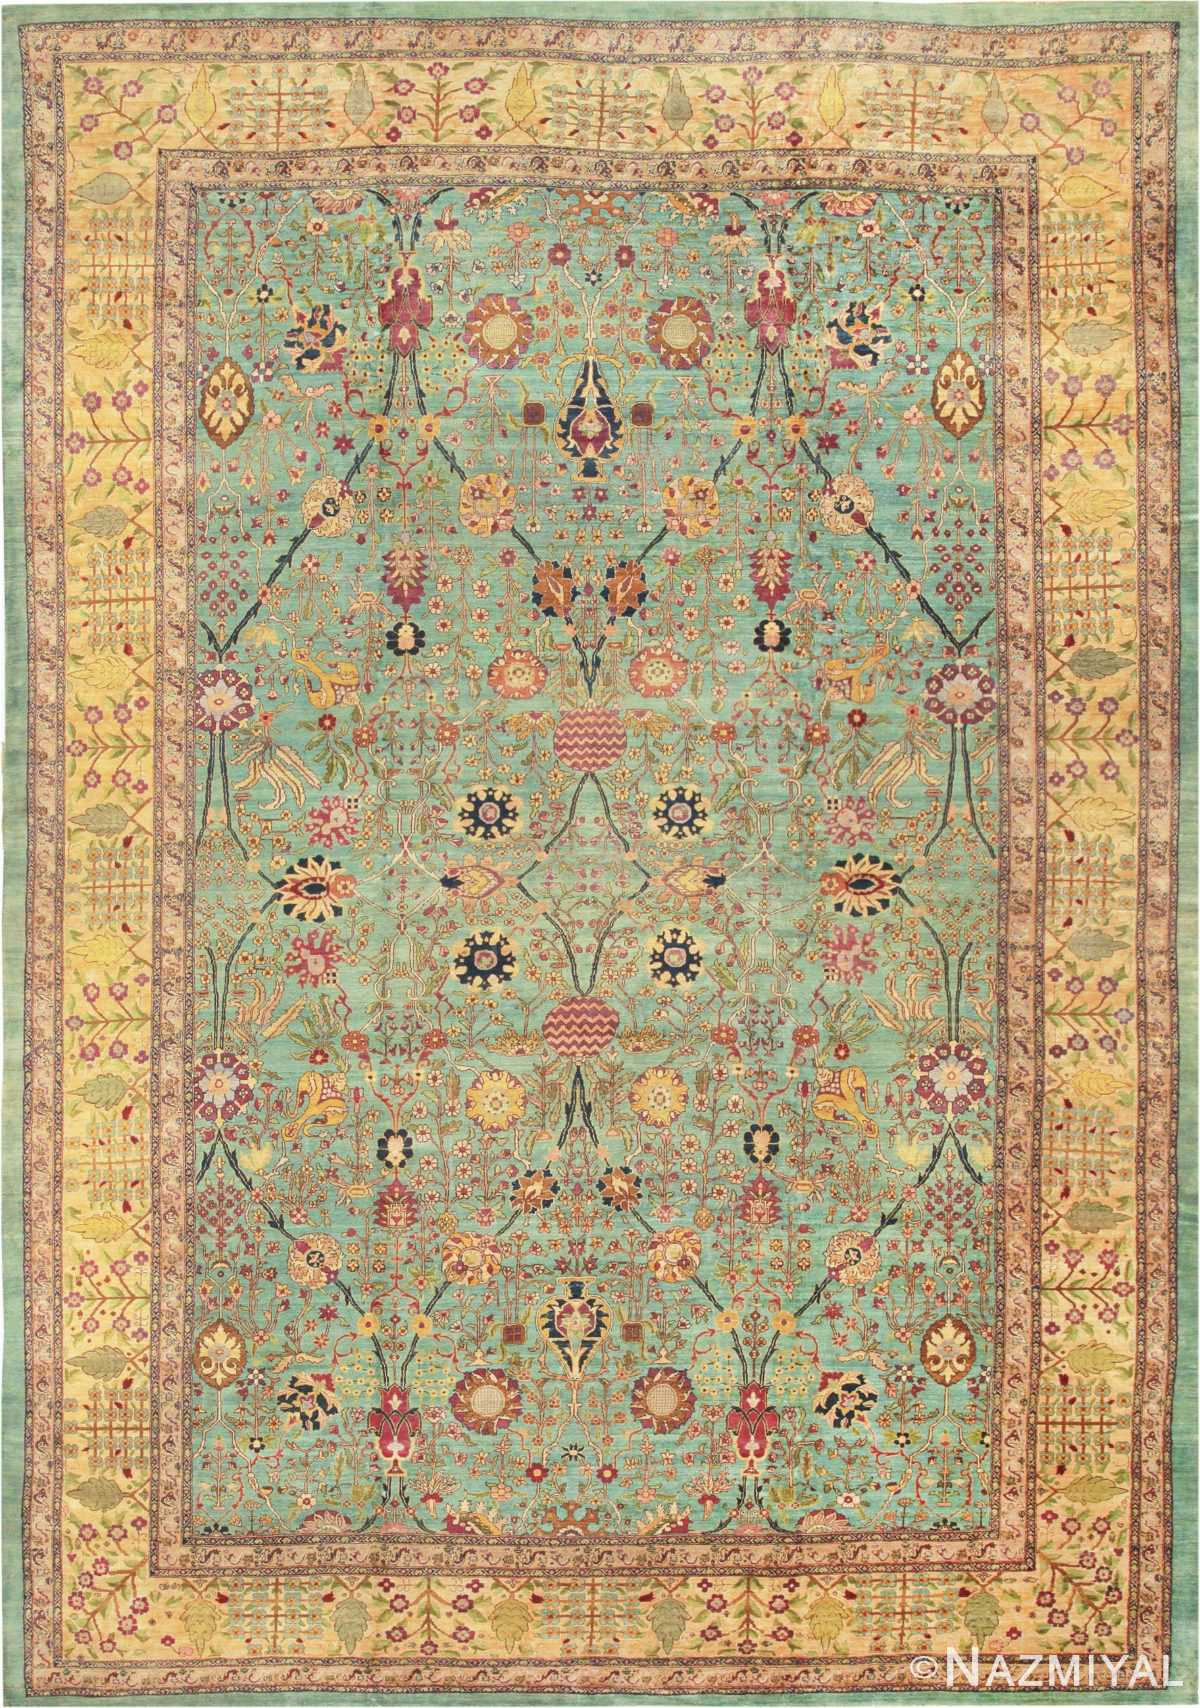 Large Oversized Seafoam Color Antique Indian Agra Rug 40317 by Nazmiyal